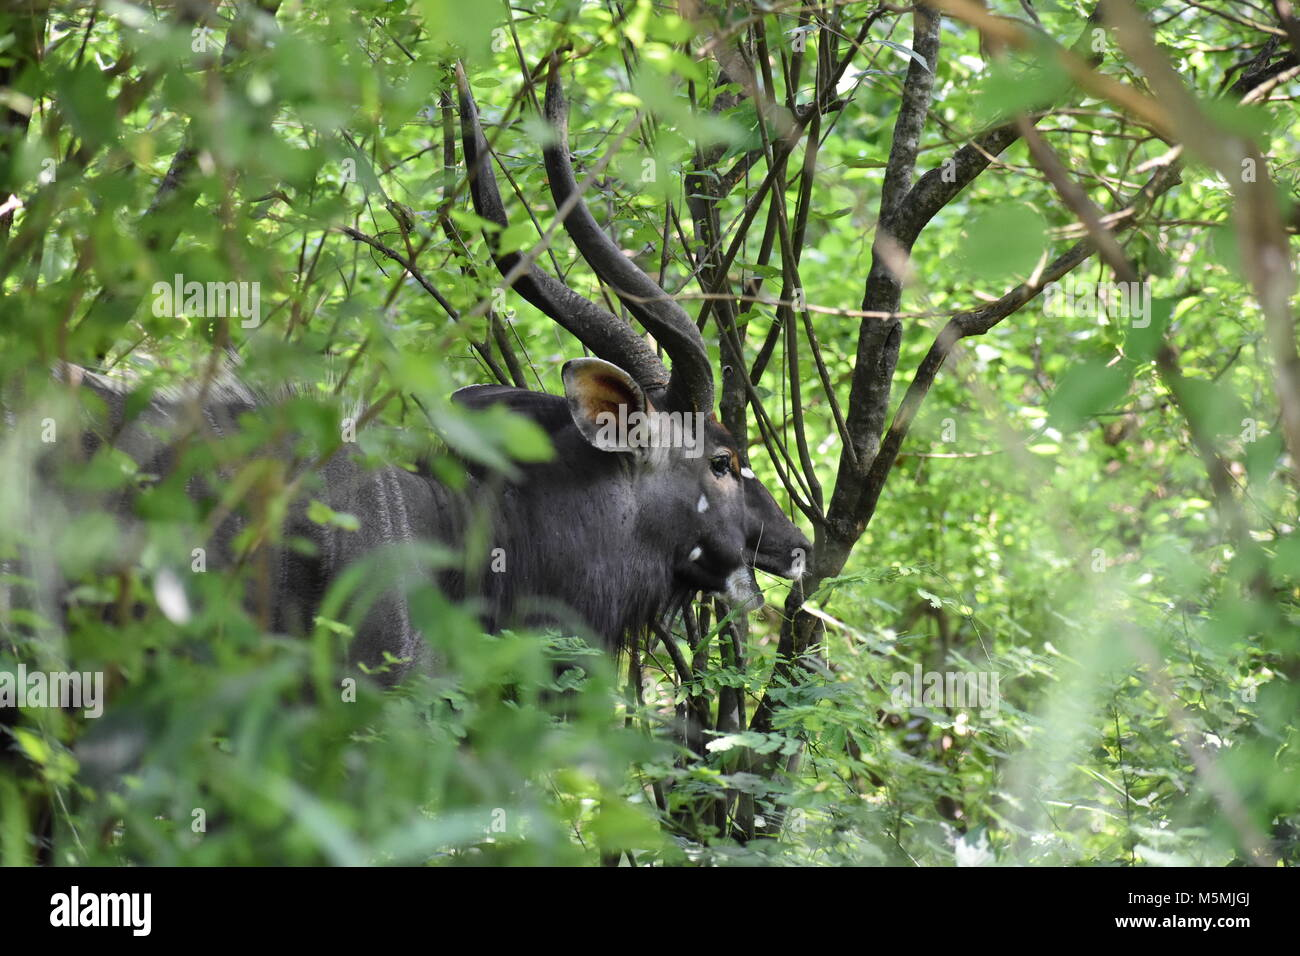 A Nyala Bull Ruminating In The Bushes - Stock Image